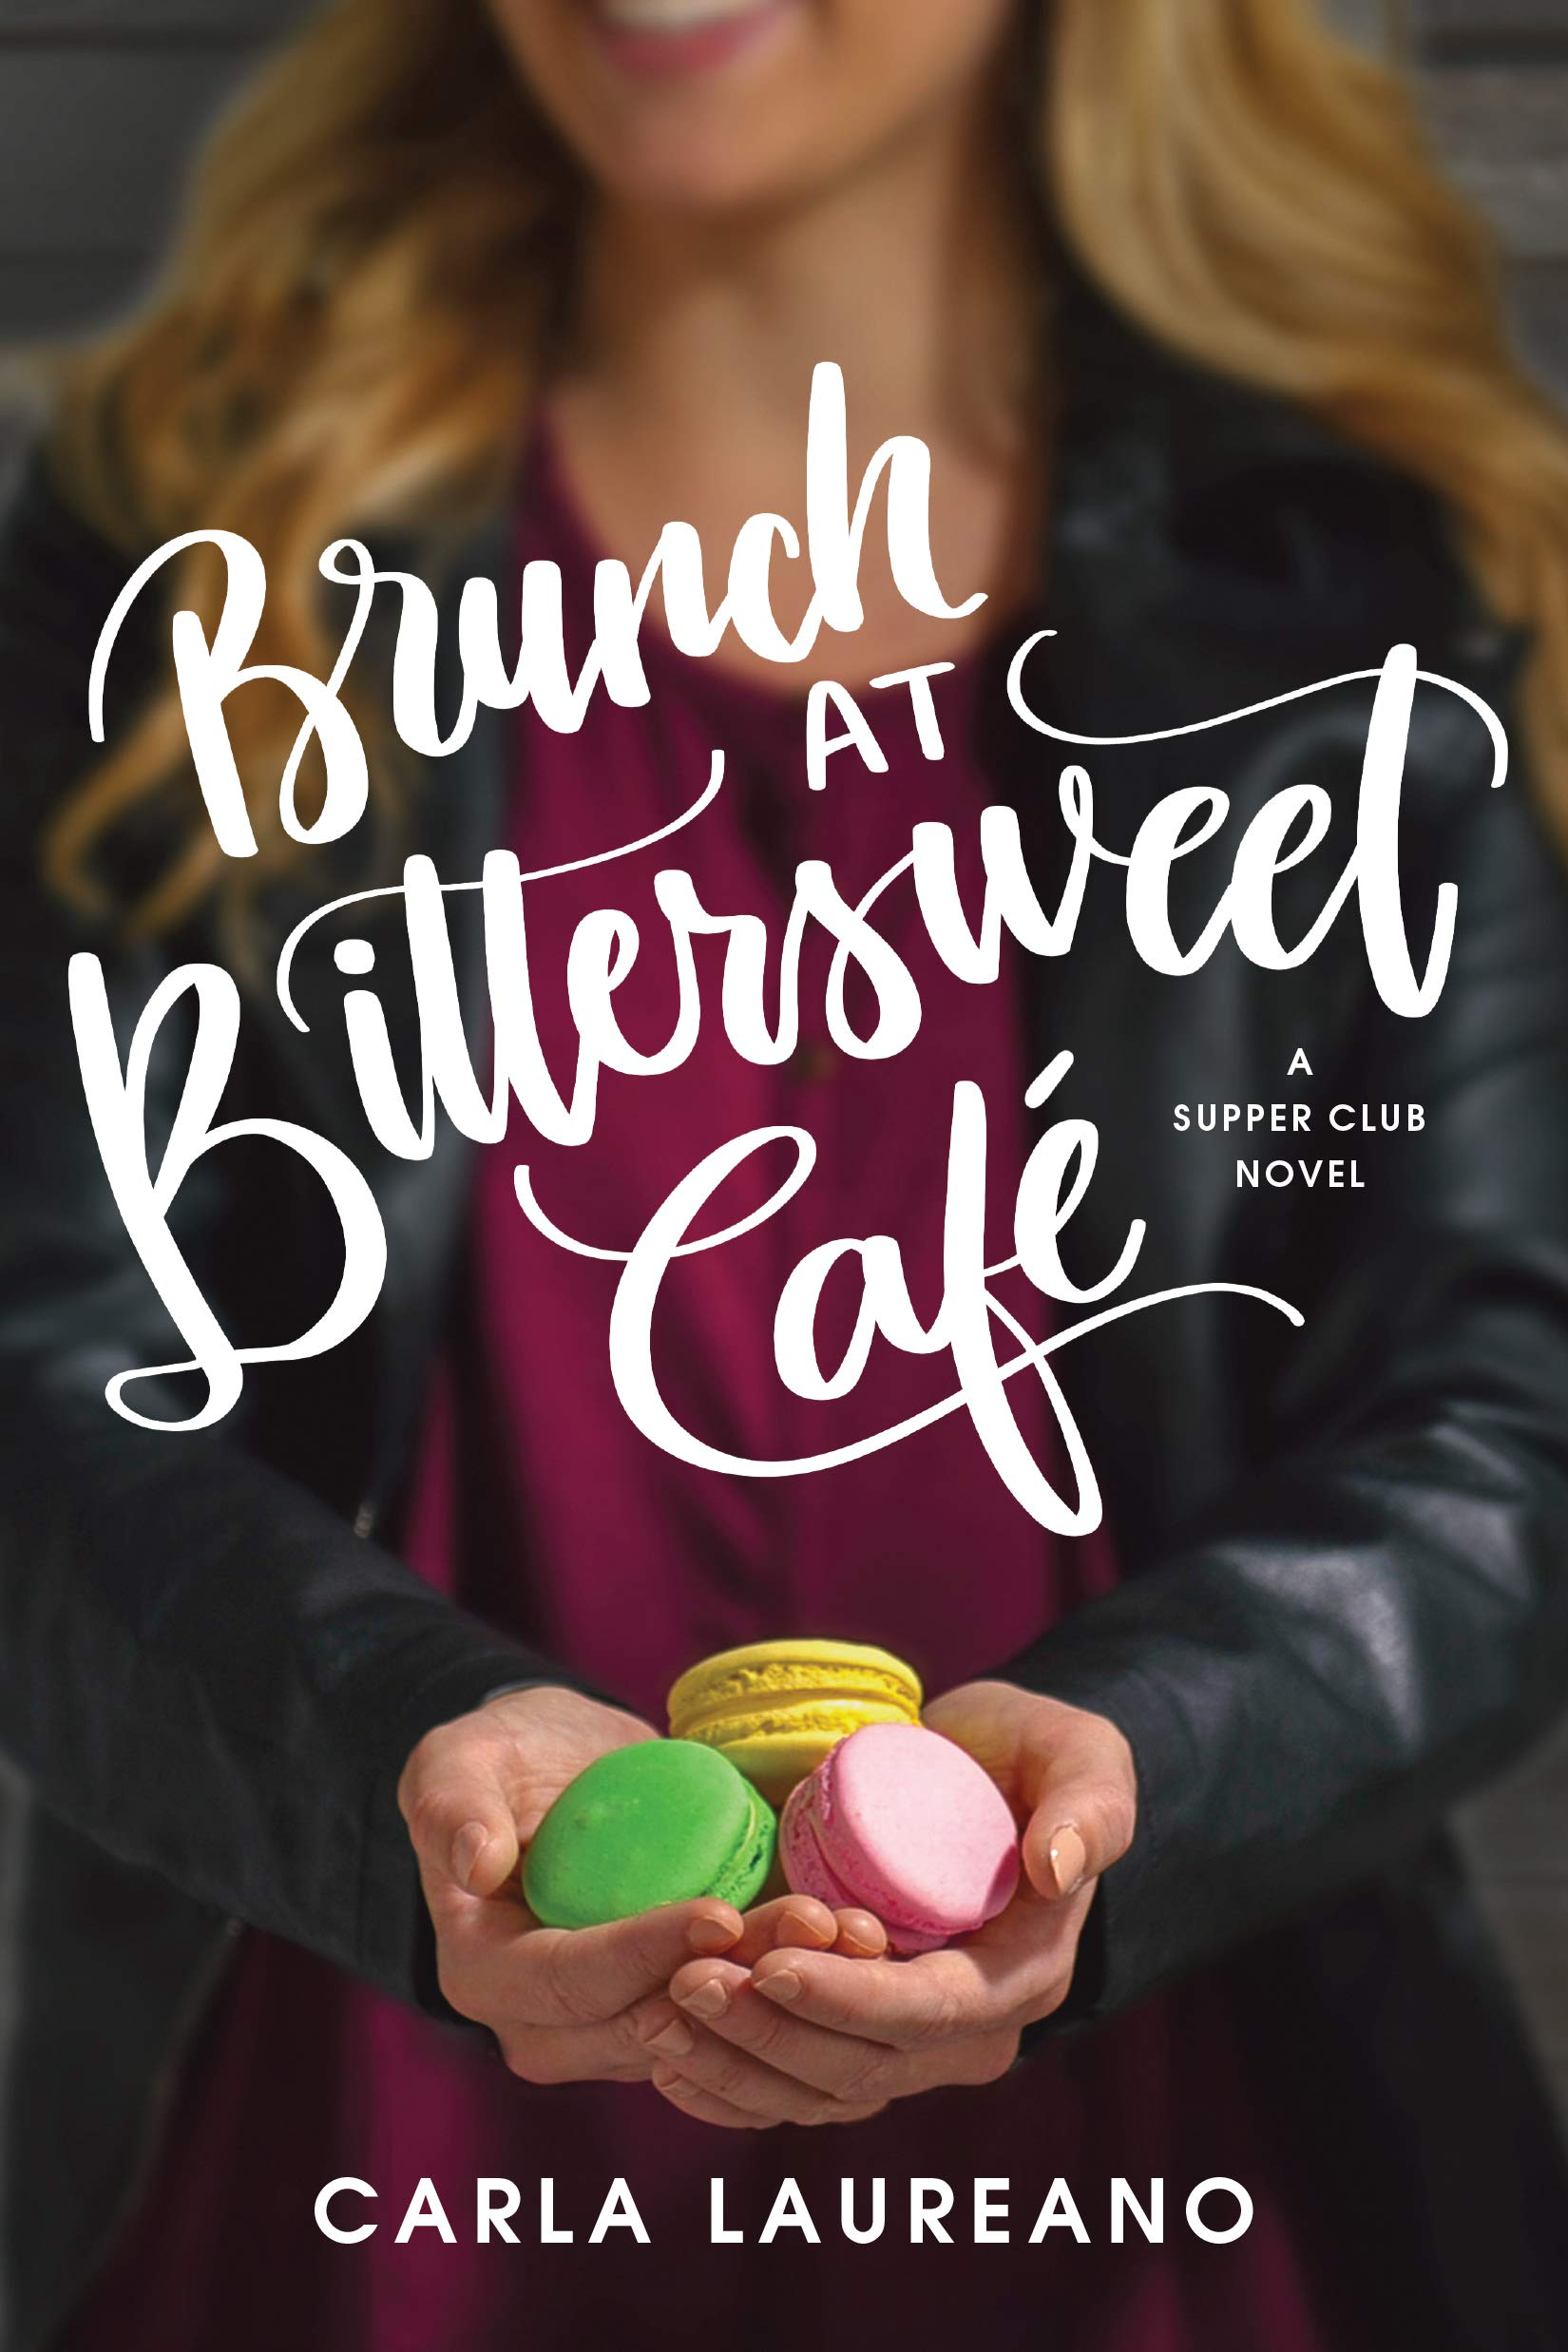 Brunch at Bittersweet Cafe by Carla Laureano